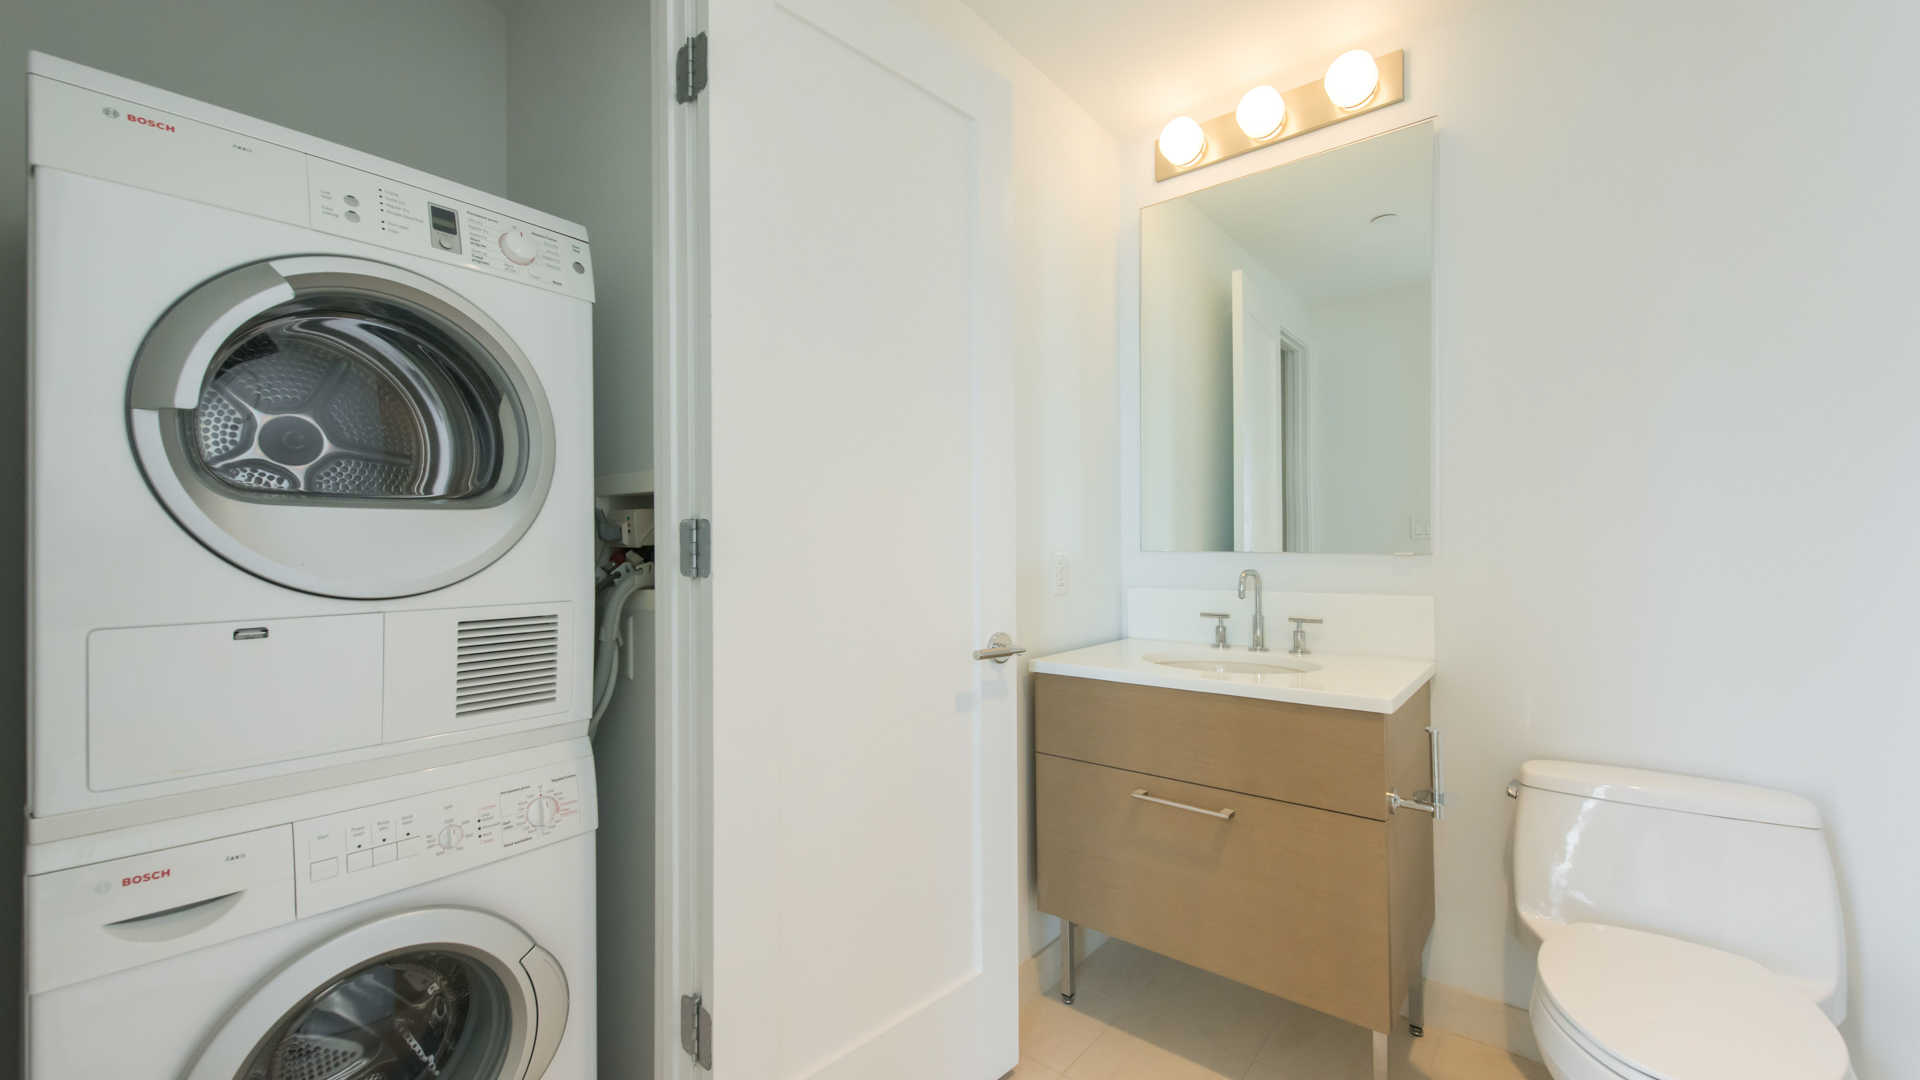 Third square apartments washer and dryer